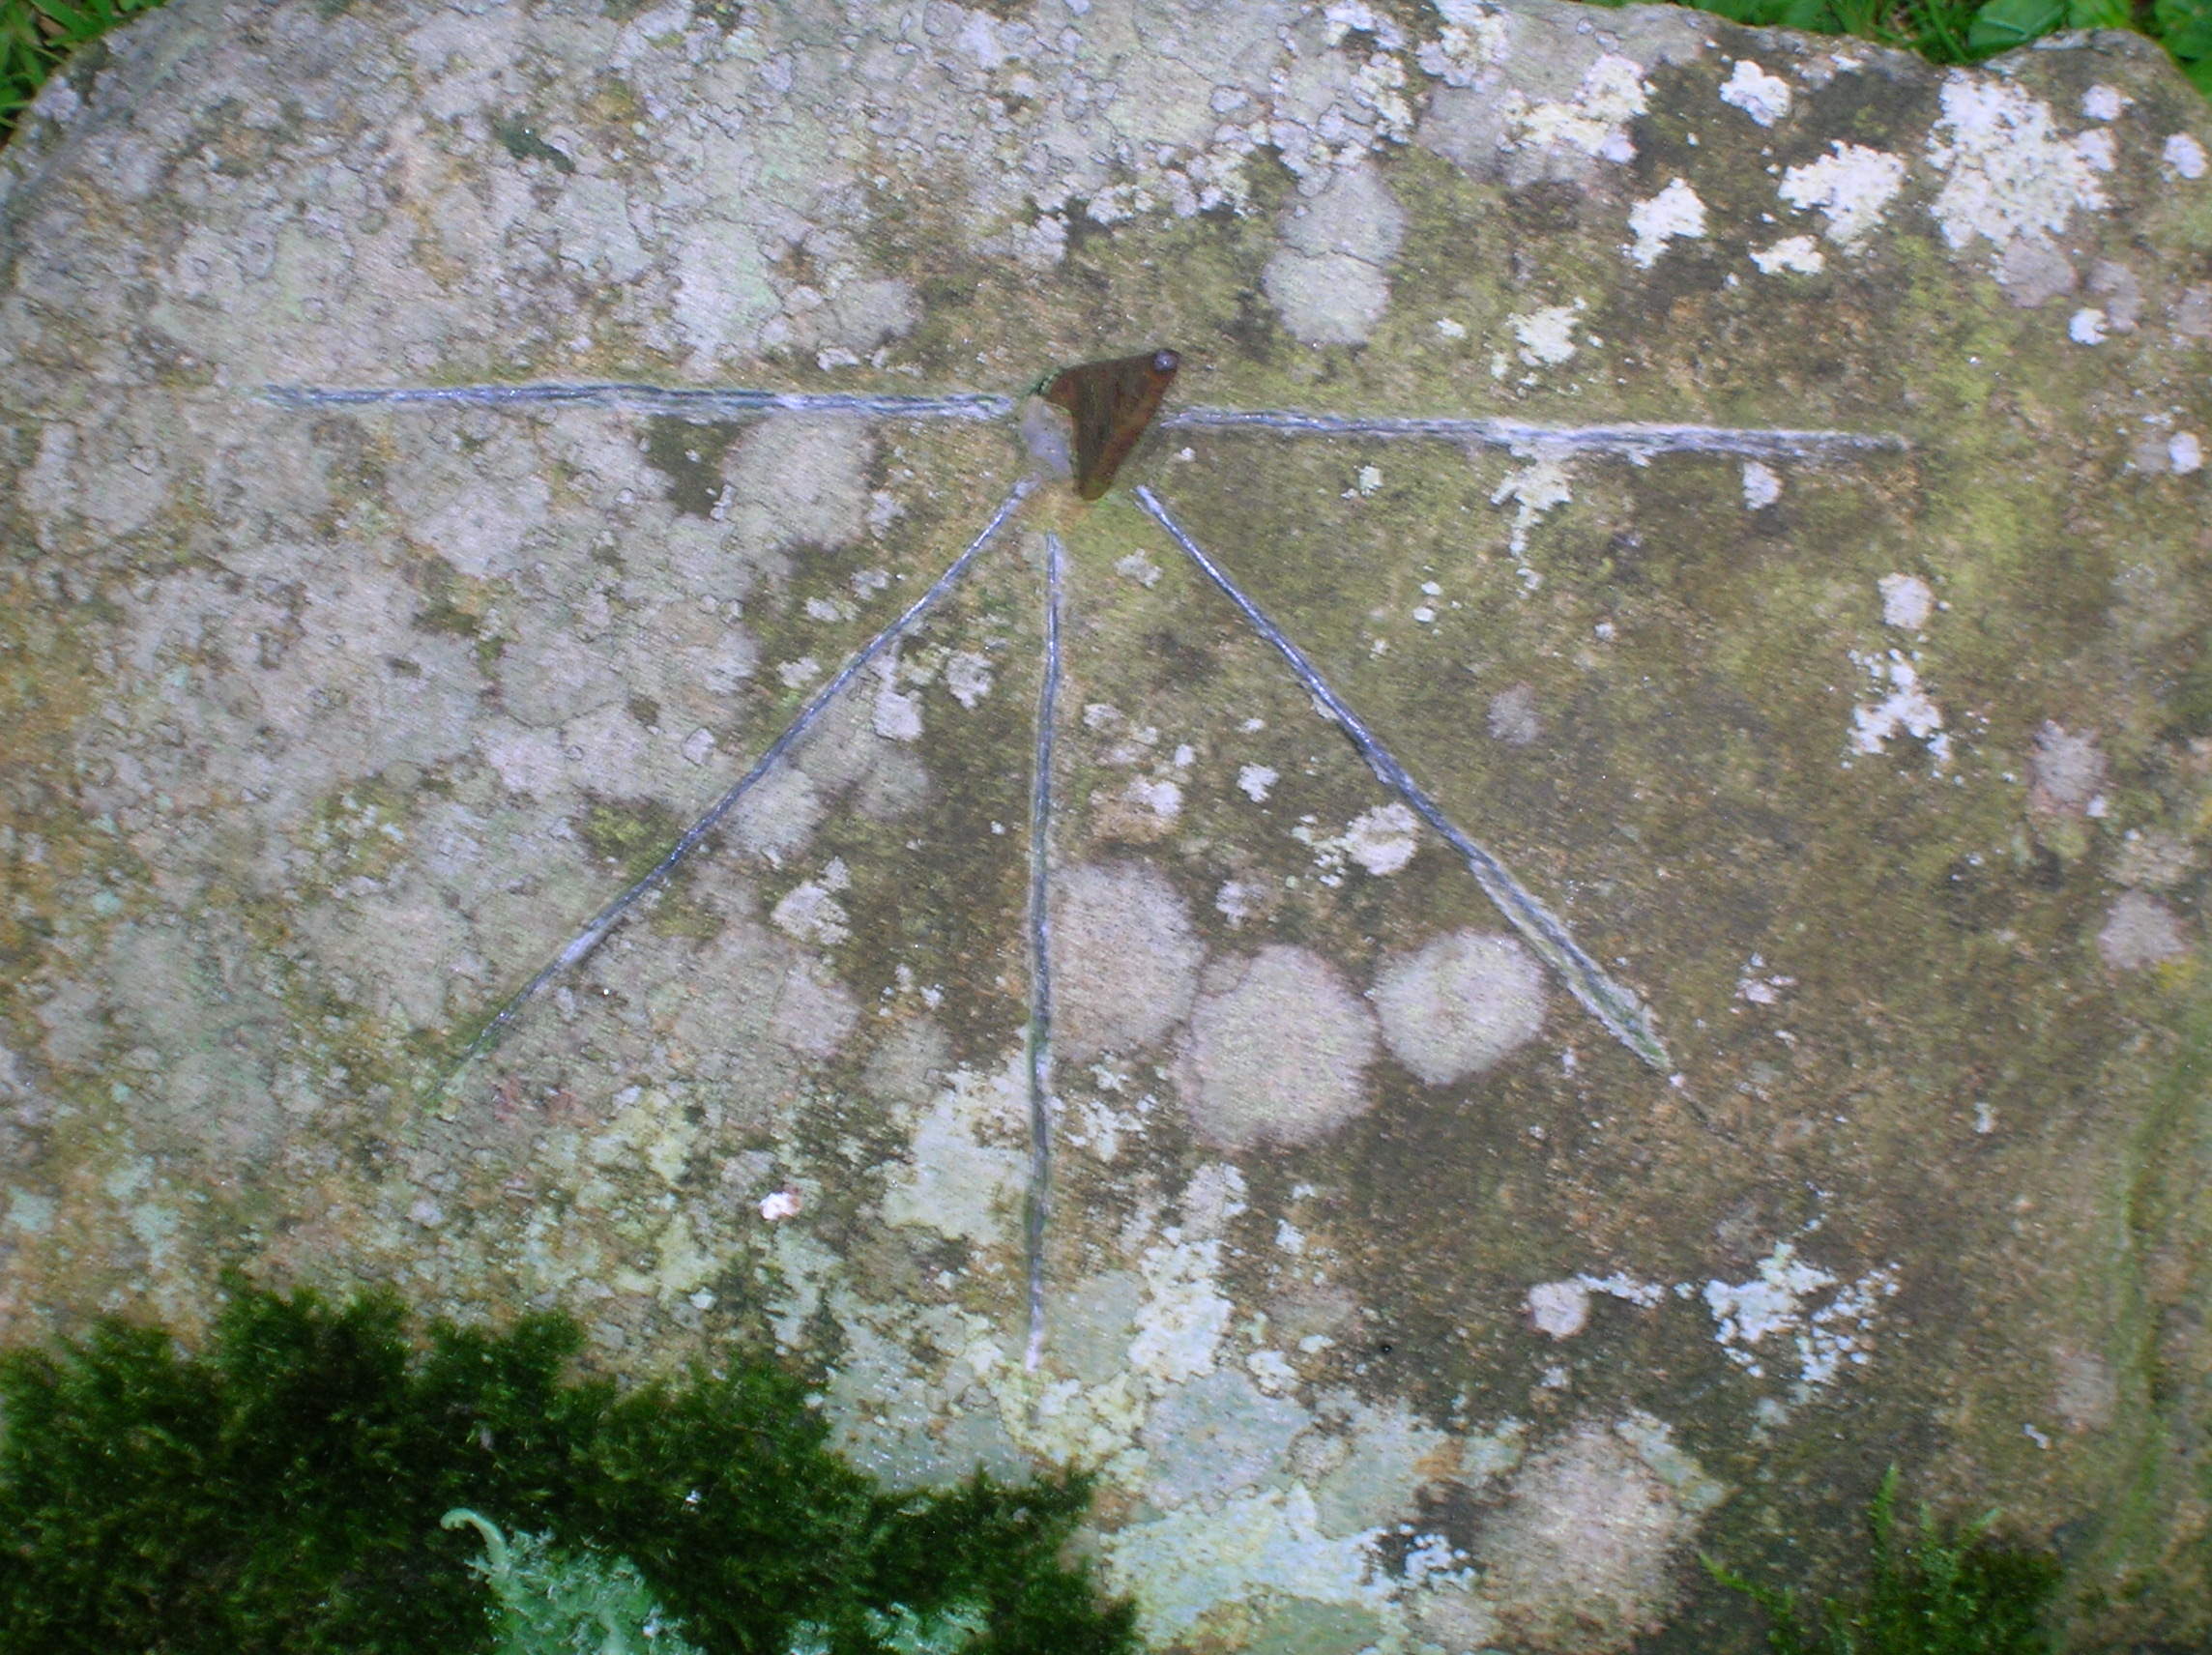 Via Wikimedia Commons: A sundial based on the famous Bewcastle Cross example of the 7th-century. The Day on the dial has been divided up into four 'Tides' of three hours length. August 2007.